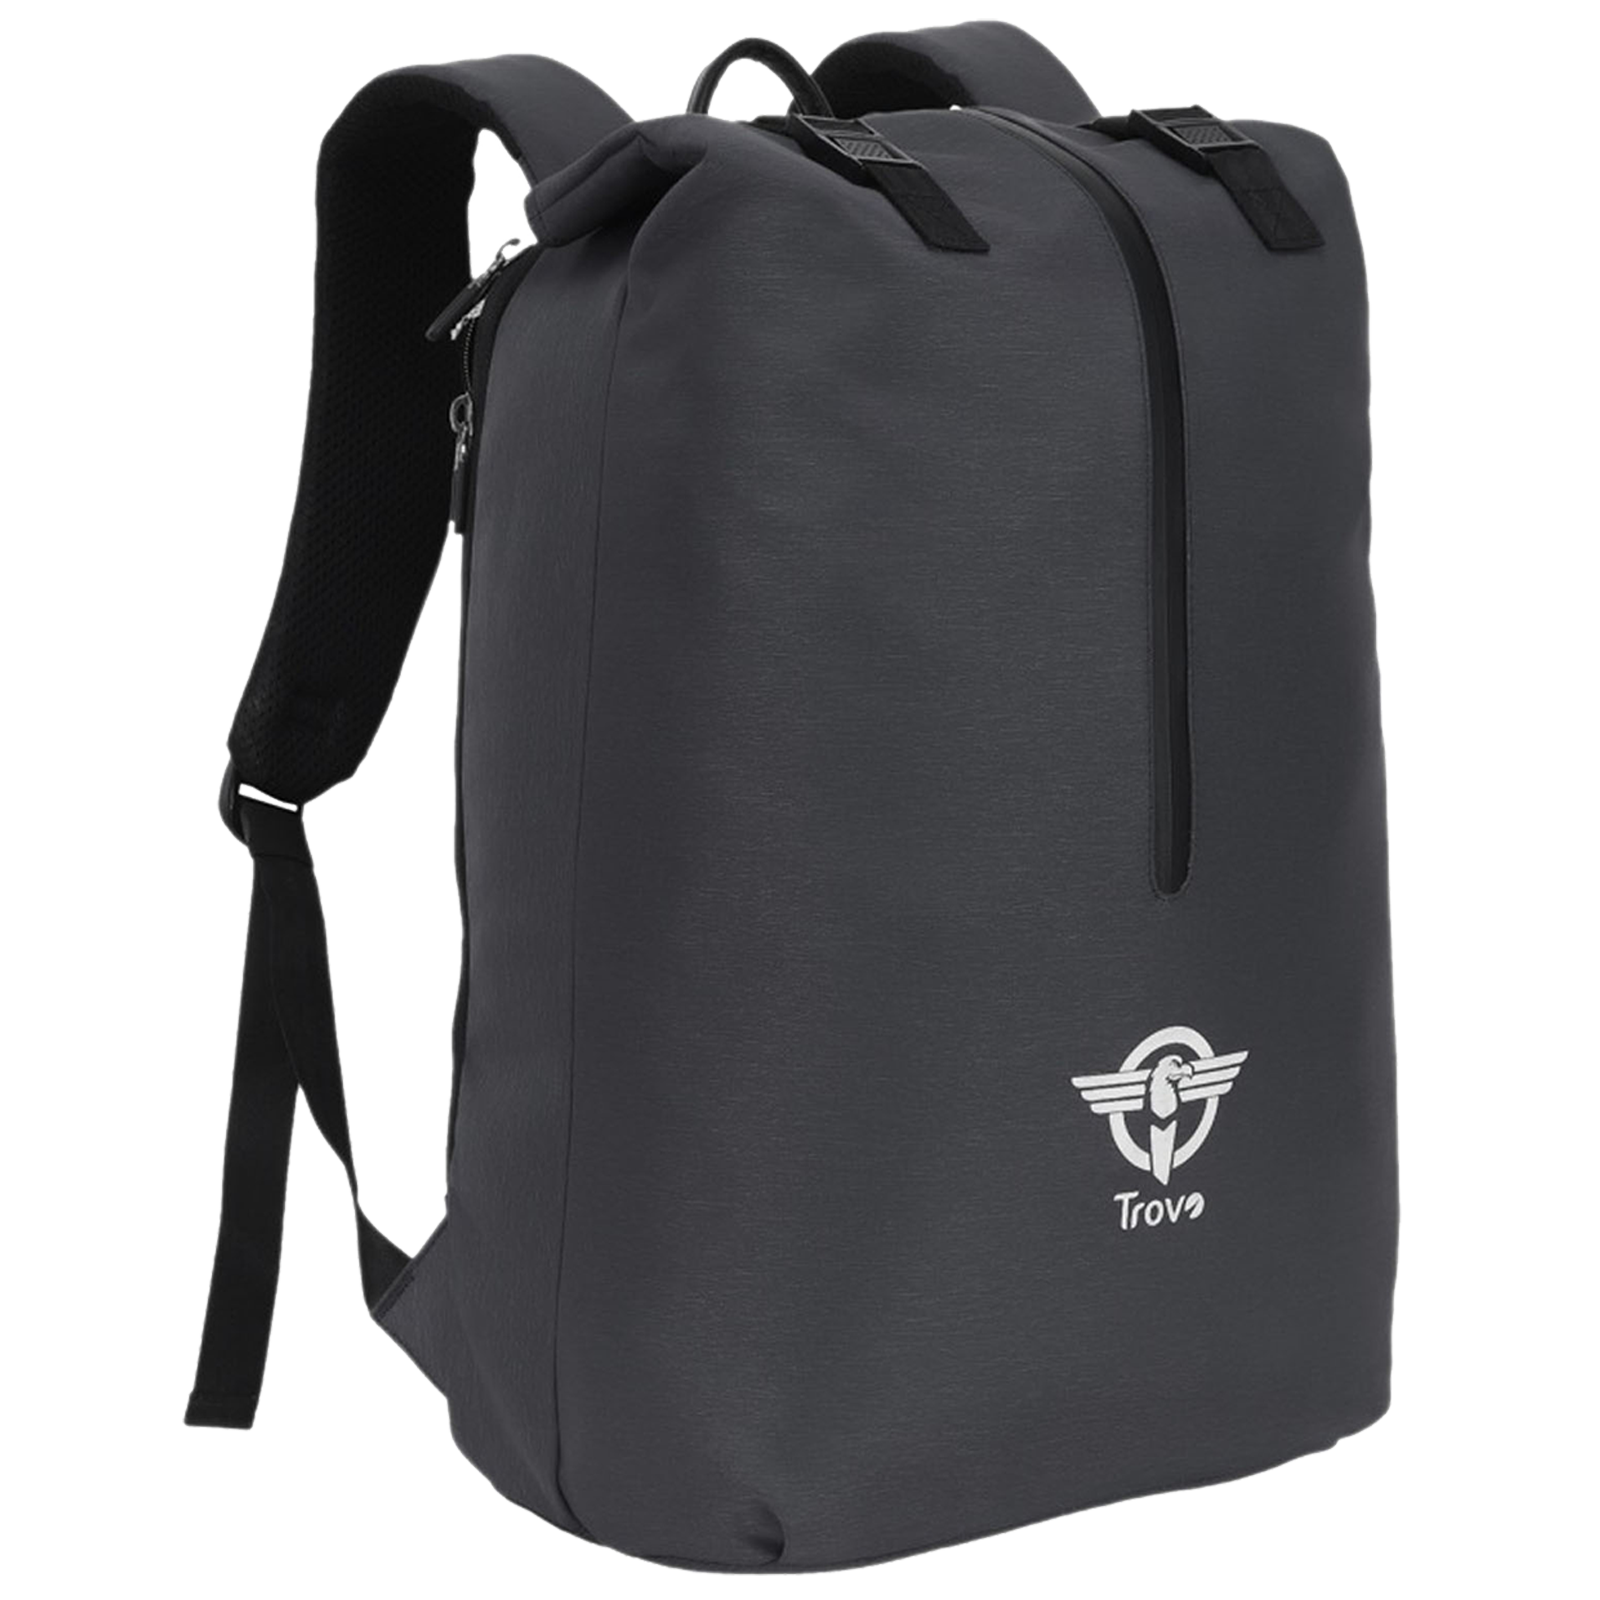 Trovo Champ Pro Plus Polyester Backpack for Laptop (Shock Proof, TLB-82-BLACK, Black)_1